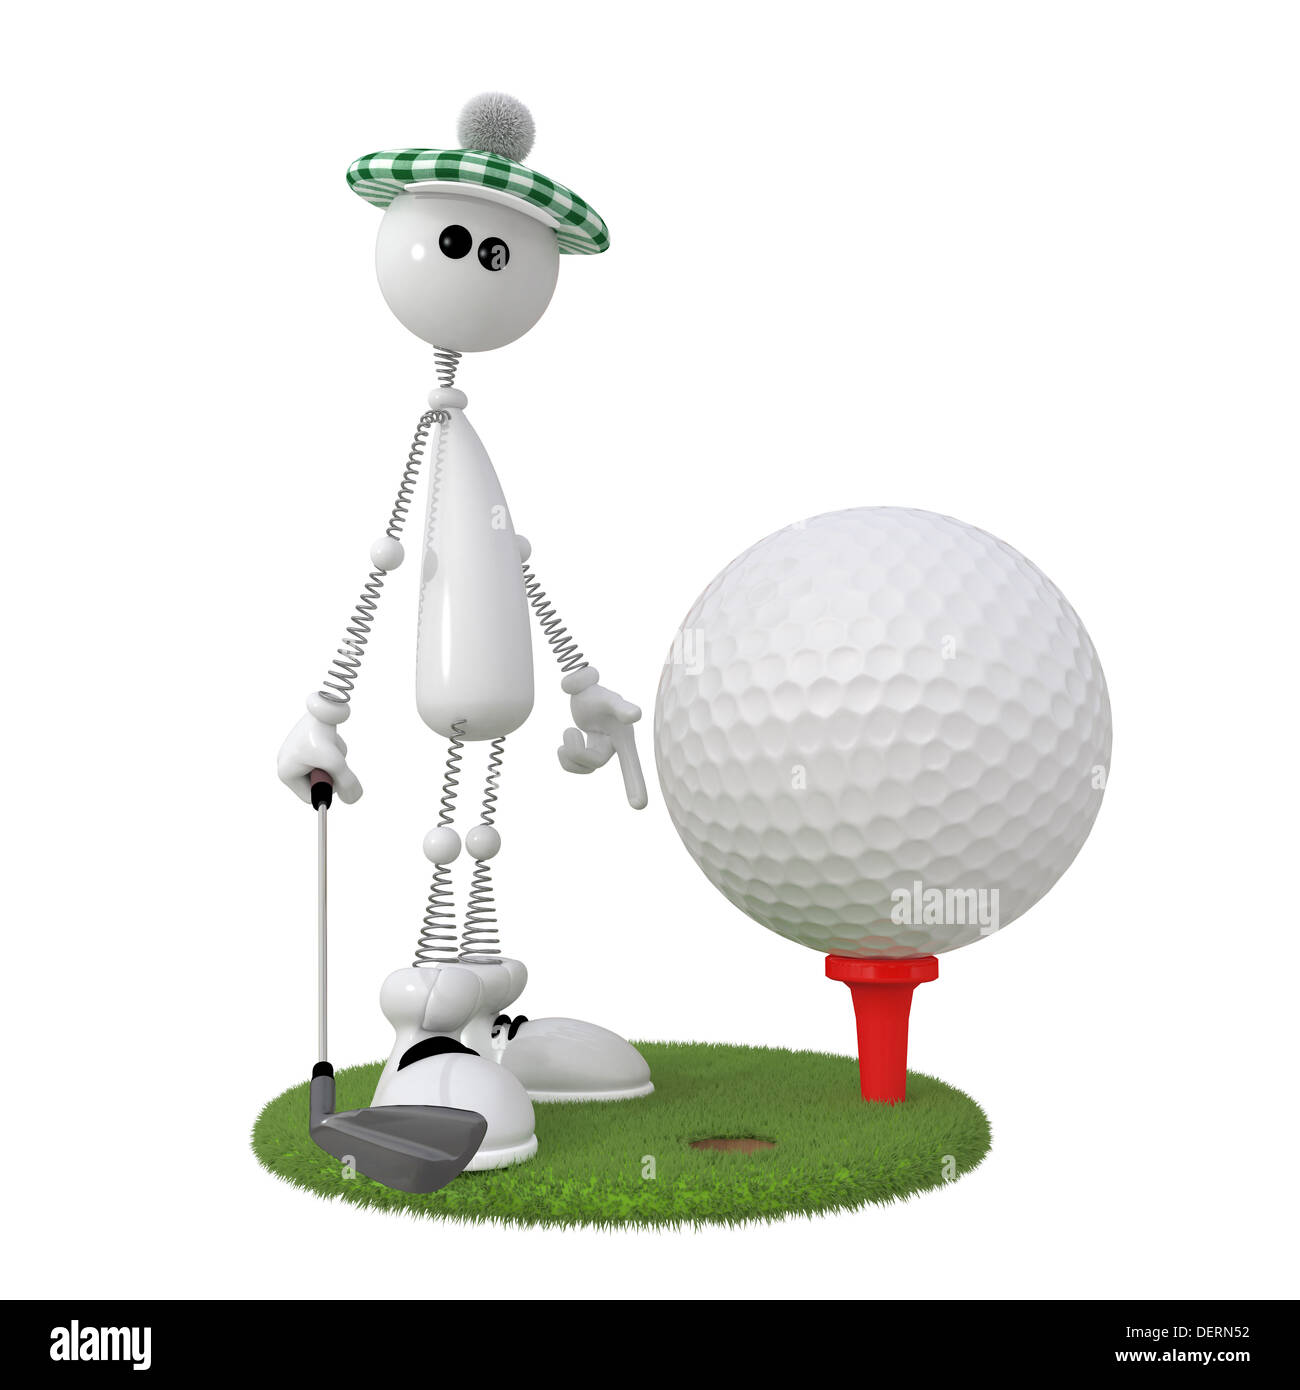 After Work Cut Out Stock Images & Pictures - Alamy on slot machine cartoons, bandit golf balls, bandit golf course,